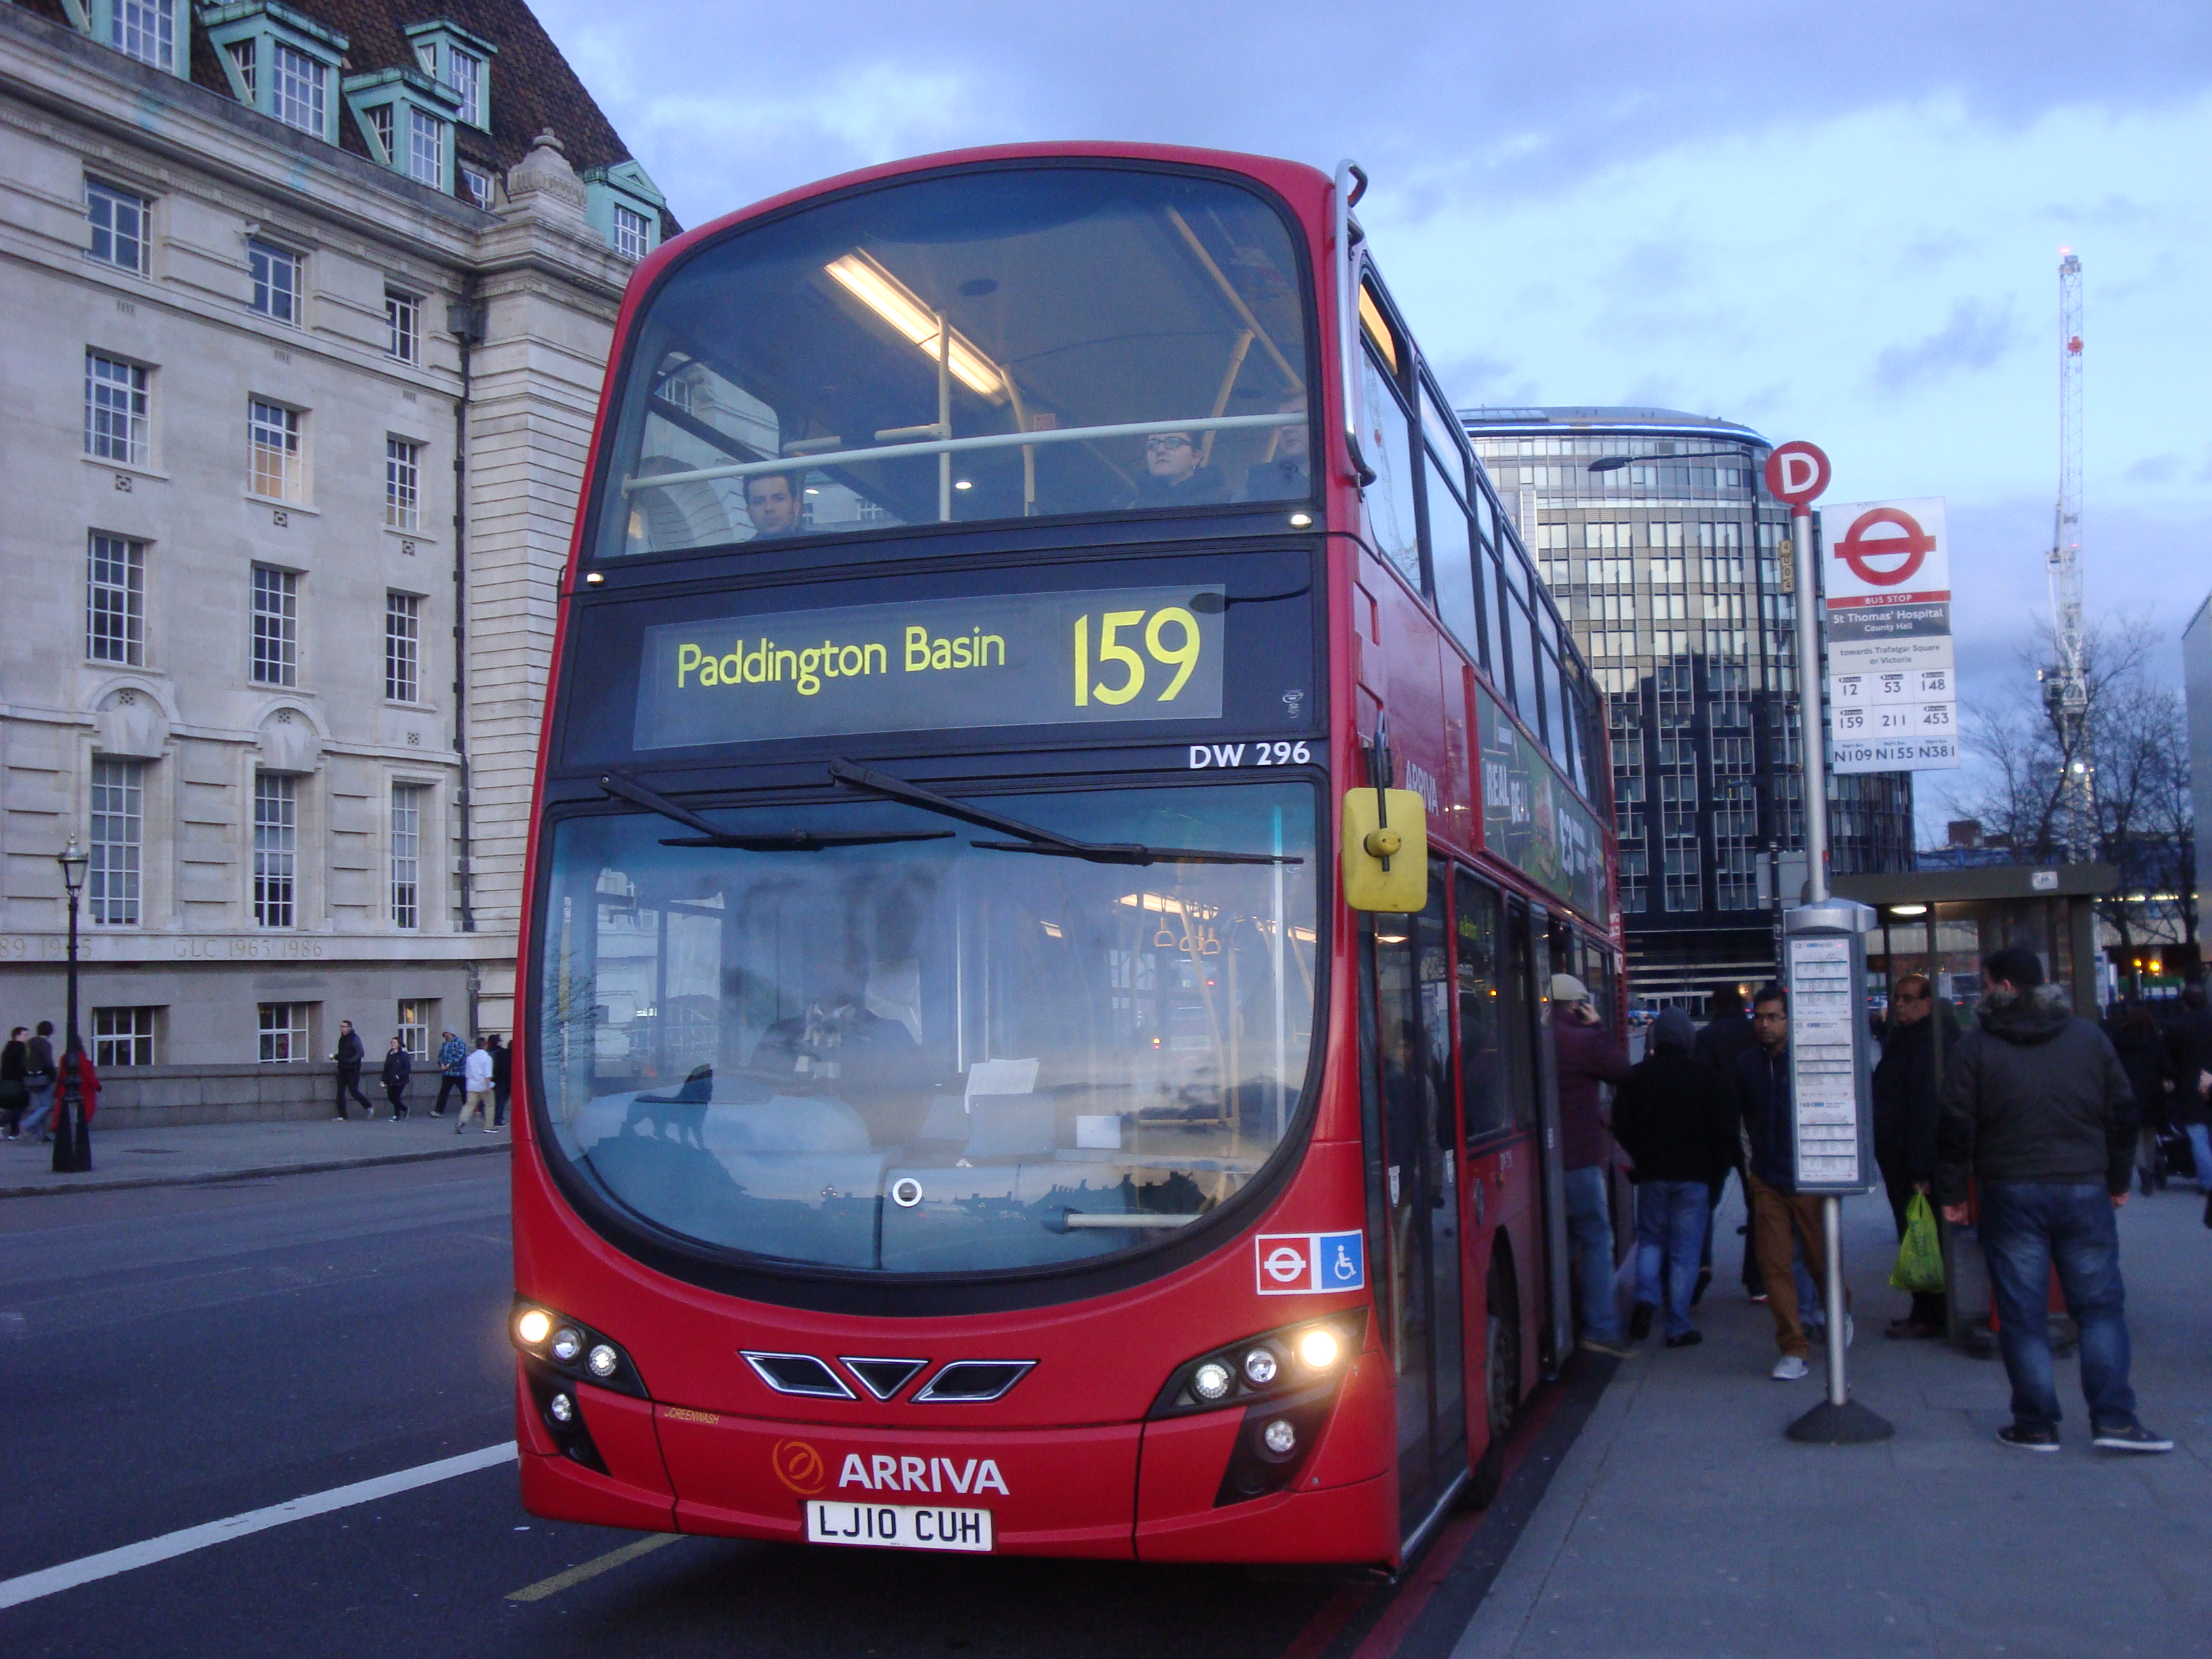 London Buses route 159 - Wikipedia on bus stop location map, bus template, bus routes in maui hawaii, bus schedule, bus field trip, bus routes in central london, bus san francisco 1960, b13 bus map, bus travel to georgia, qm5 bus map, bus routes oahu hawaii, bus routes colorado springs co, bus routes logo, bus routes los angeles, b47 bus map, bus models, m35 bus map, bus seat map, bus routes in plymouth england,